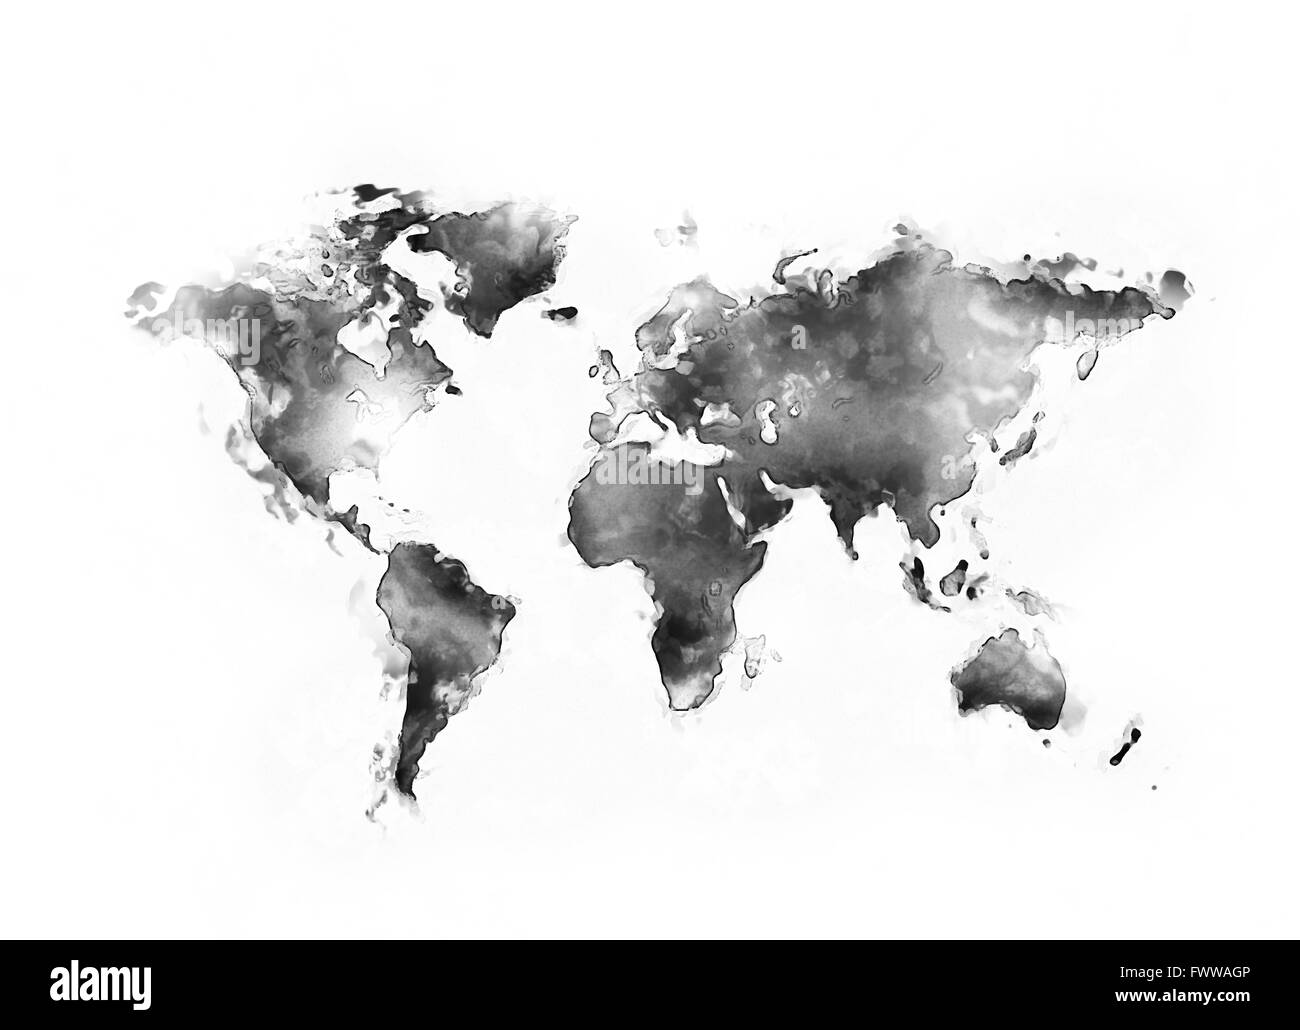 Abstract creative world map painting stock photos abstract abstract world map painting o white background stock image gumiabroncs Images